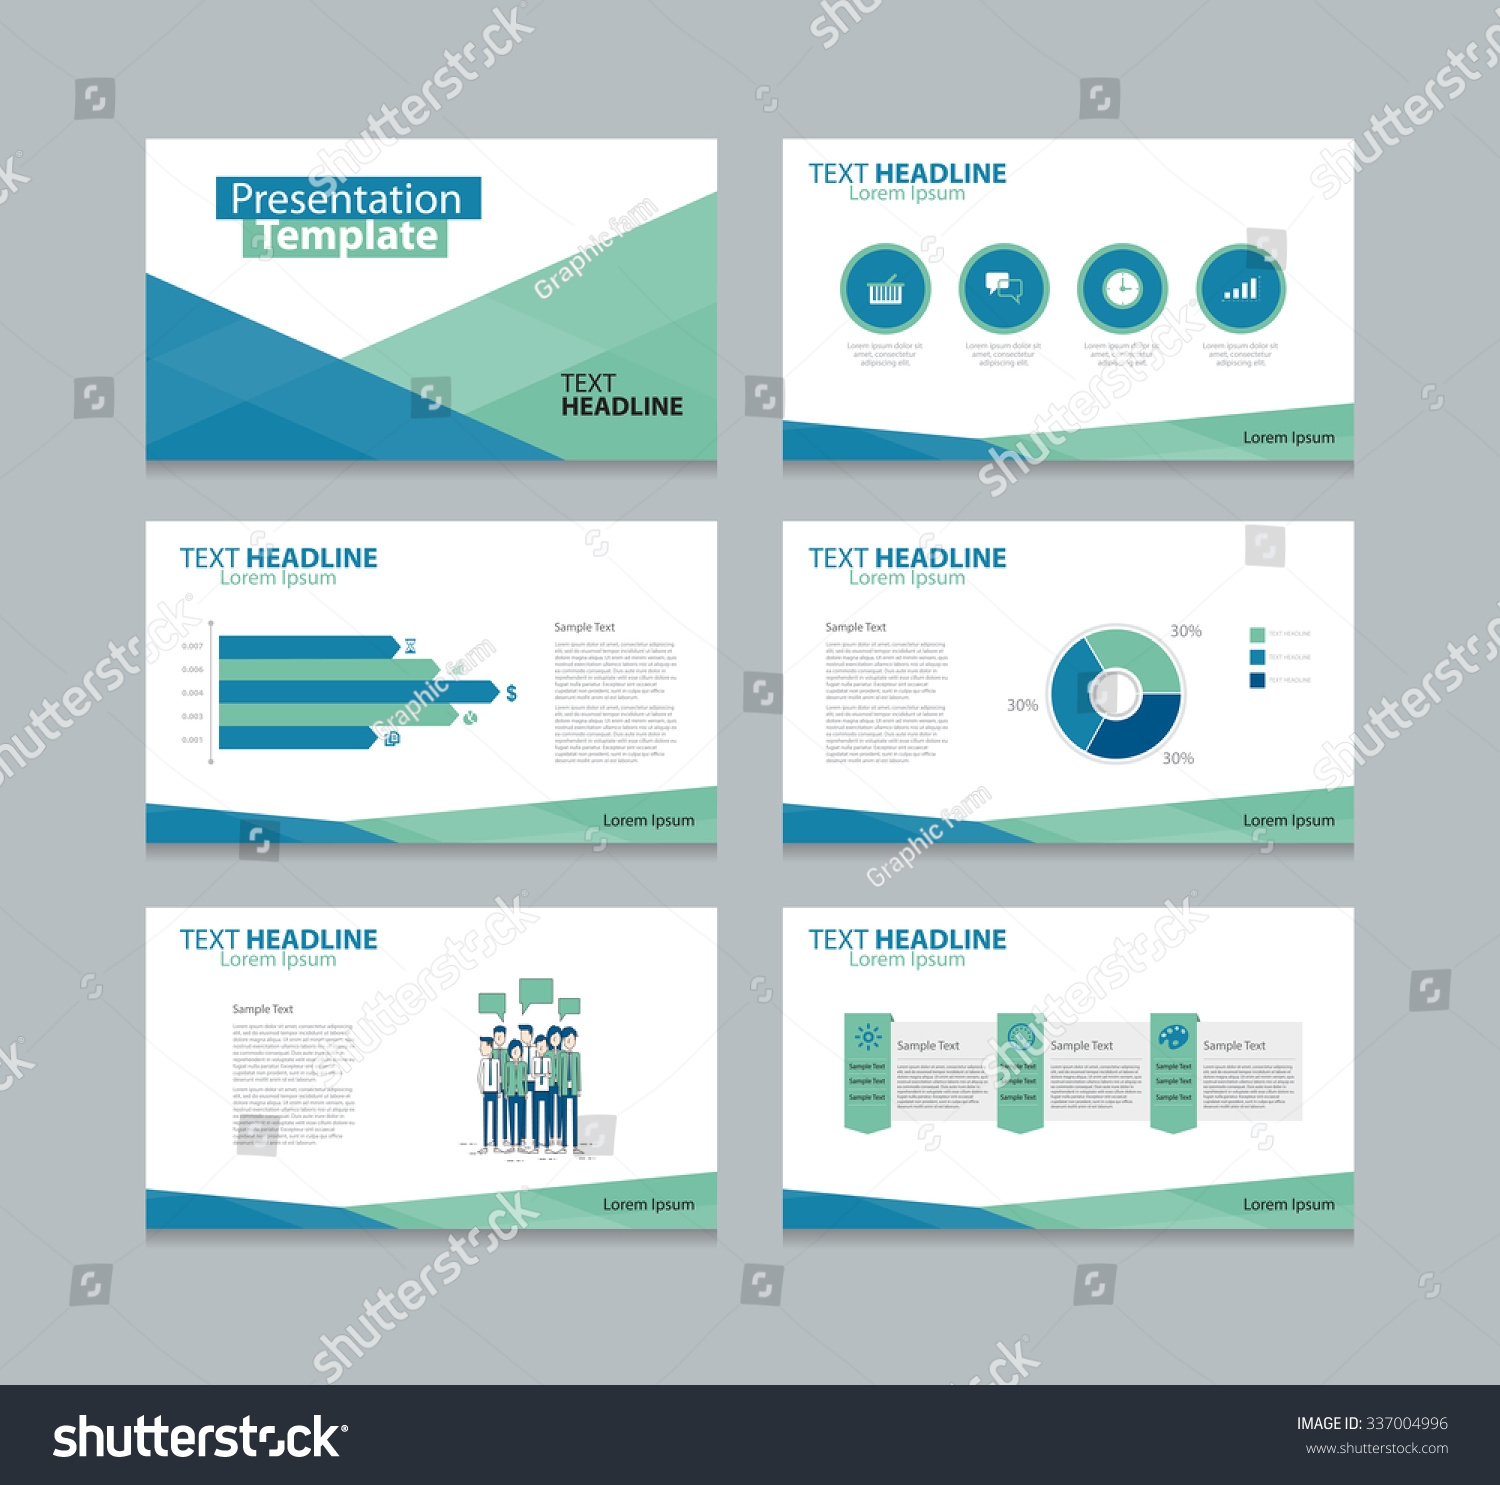 royalty free business presentation slide template 337004996 stock